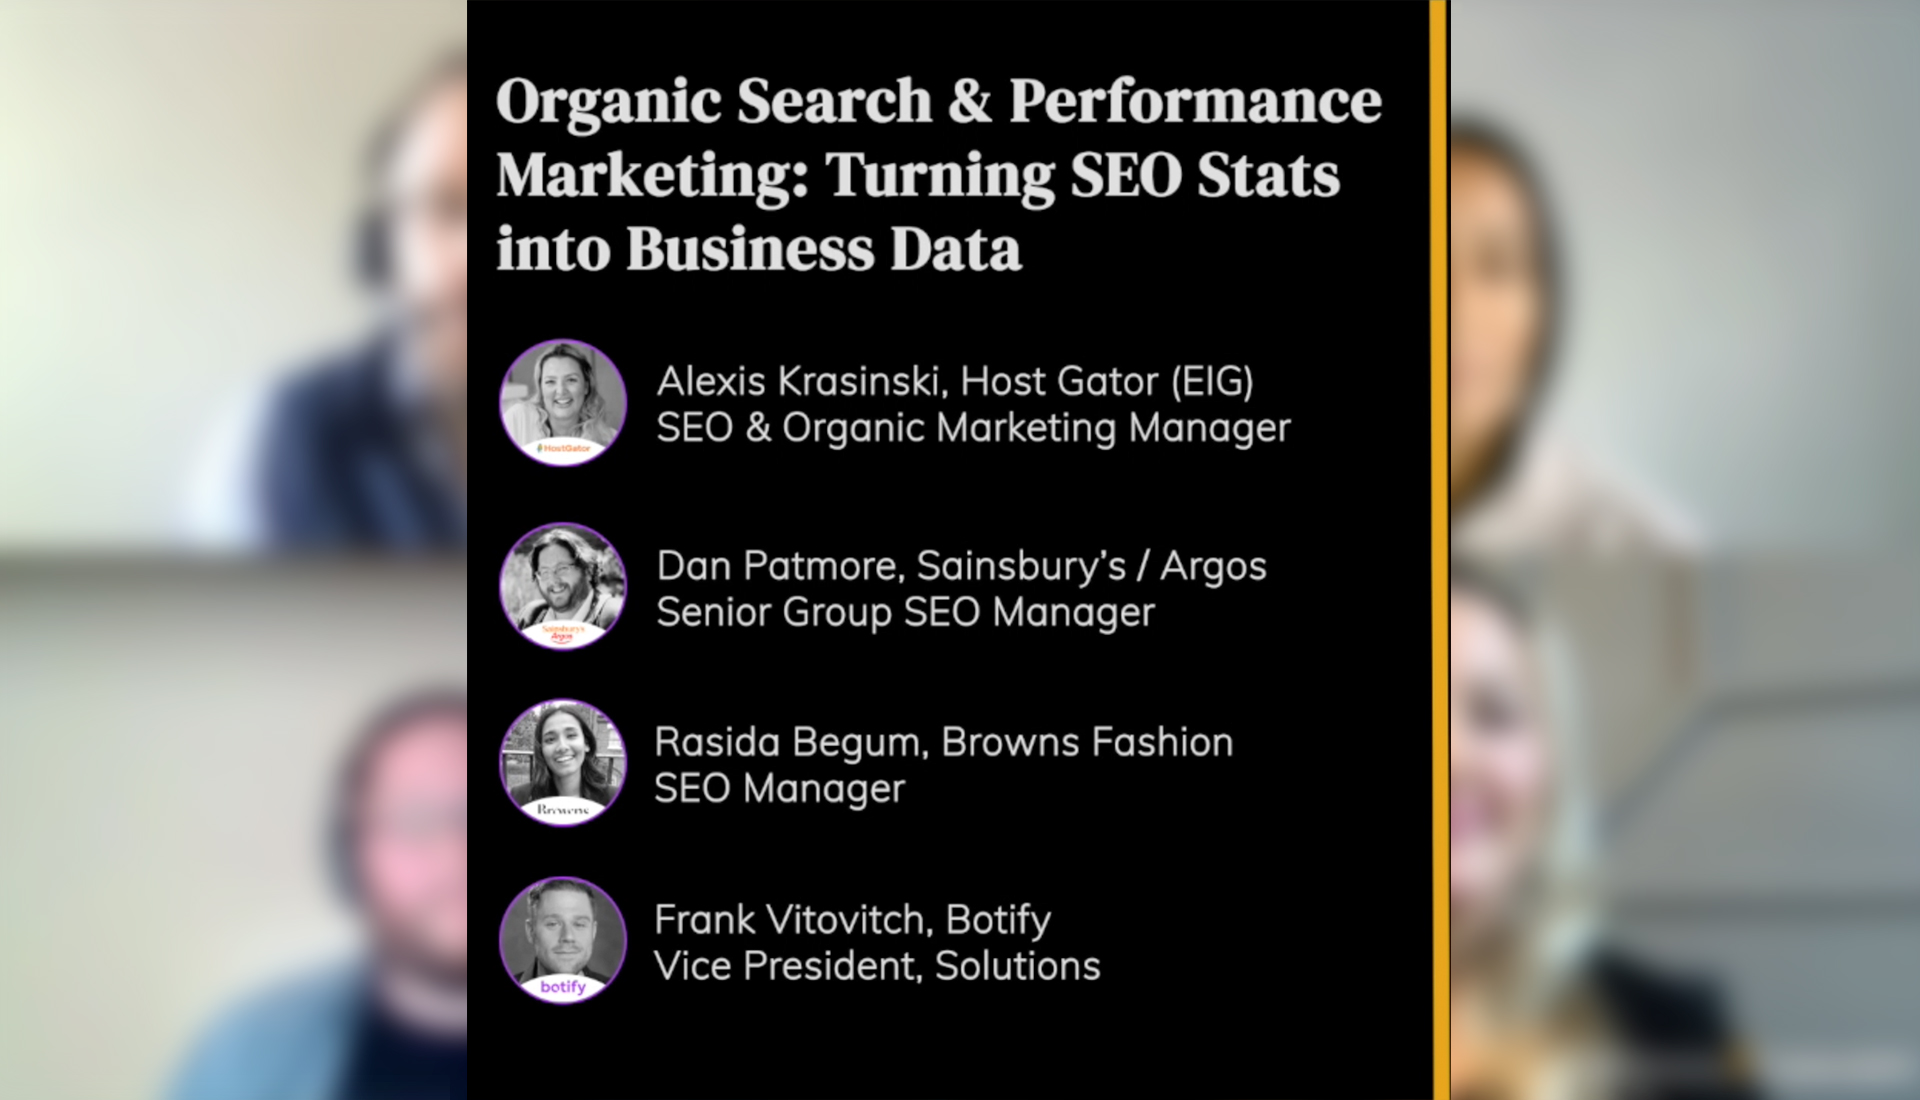 Organic Search & Performance Marketing: Turning SEO Stats into Business Data